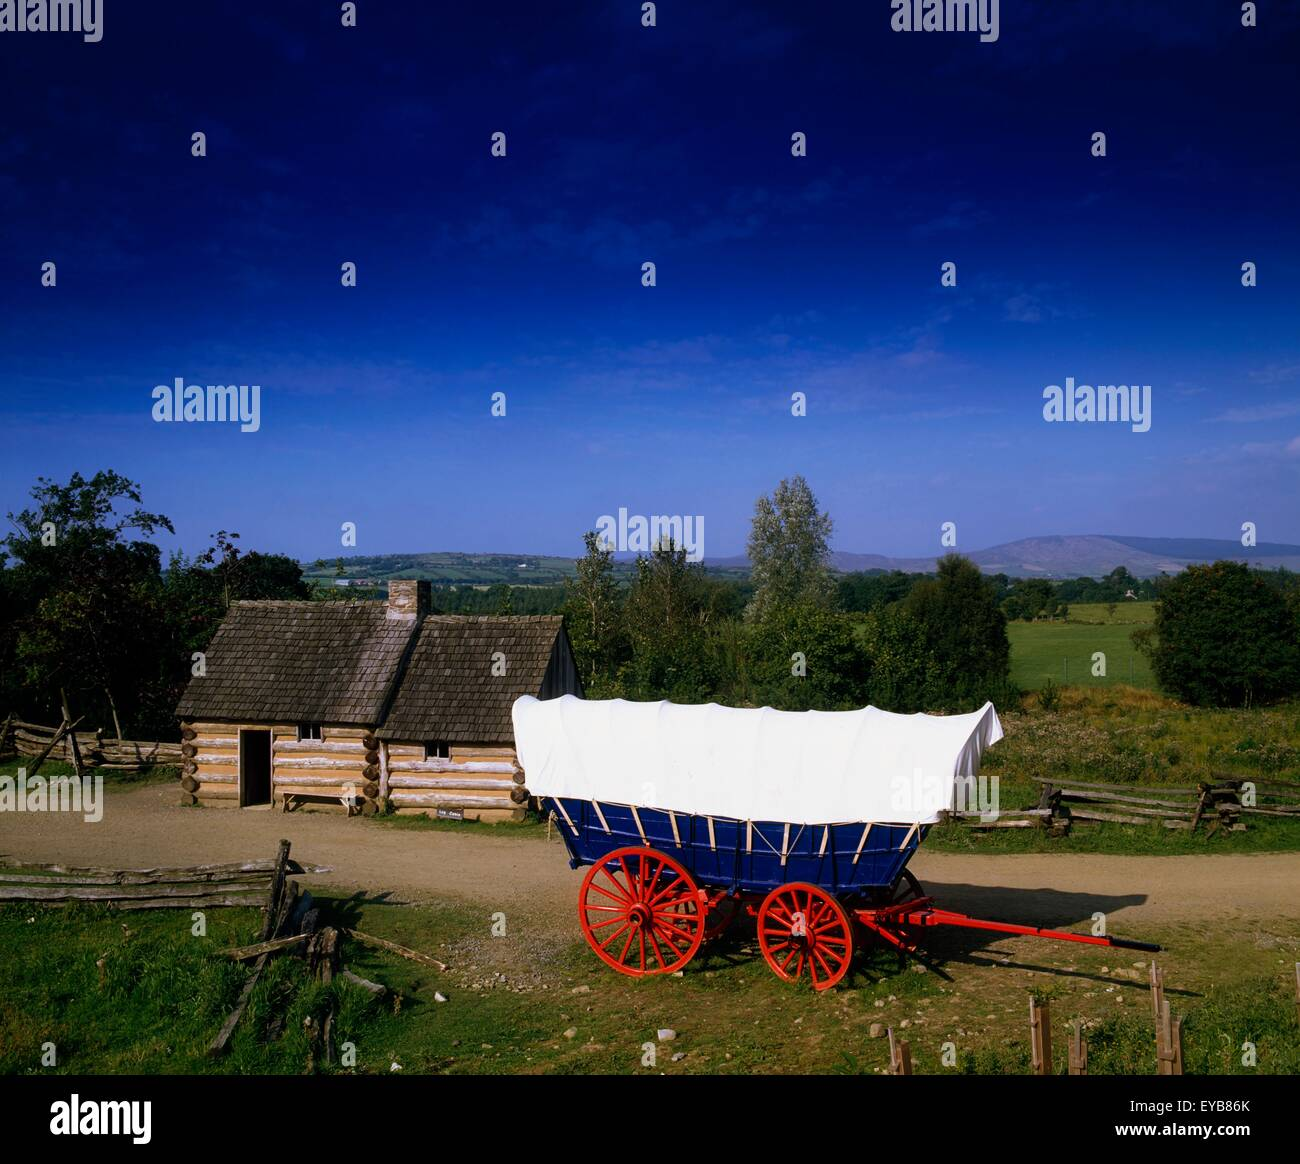 Ulster American Folk Park, Omagh, Co Tyrone, Ireland - Stock Image